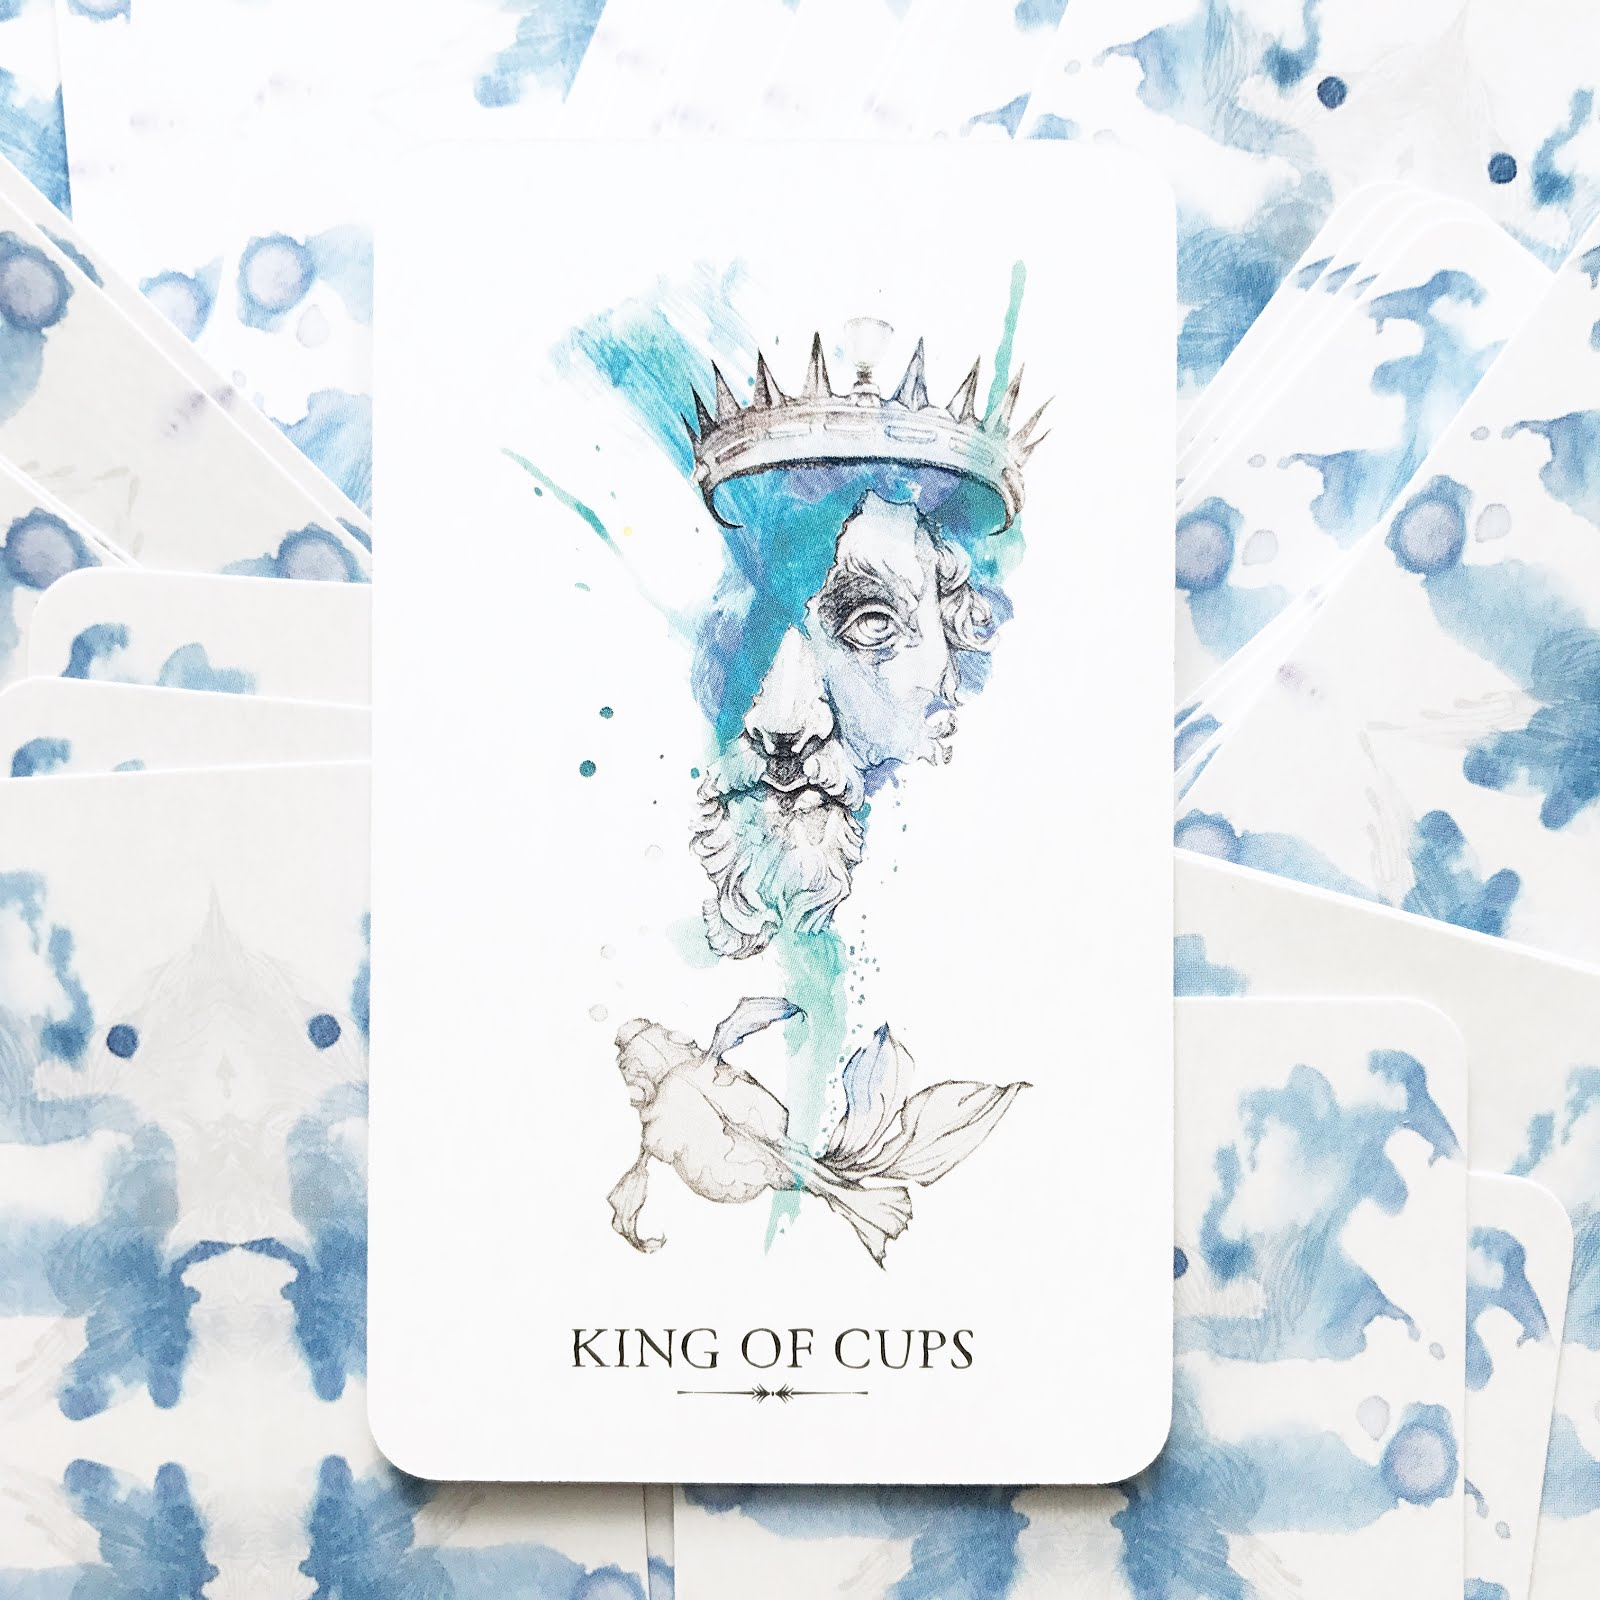 Tarot Reflections: The King of Cups   The Curious Cardslinger